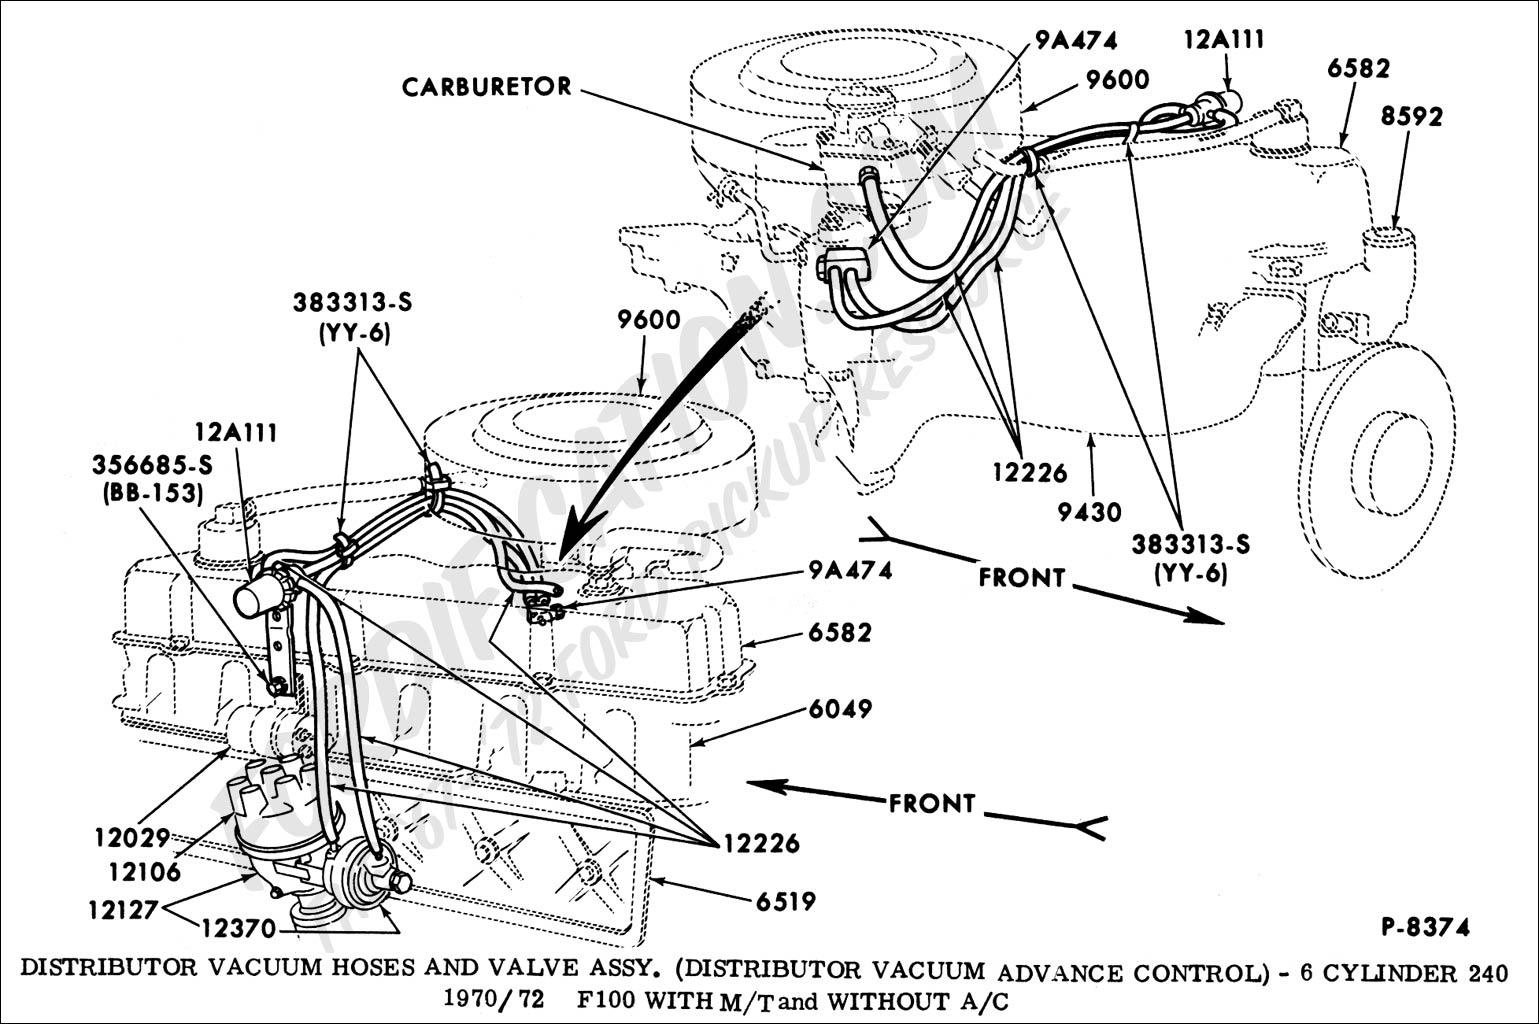 ford 351 windsor cooling system diagram | wiring diagram mando marine alternator wiring diagram 351 ford marine alternator wiring diagram